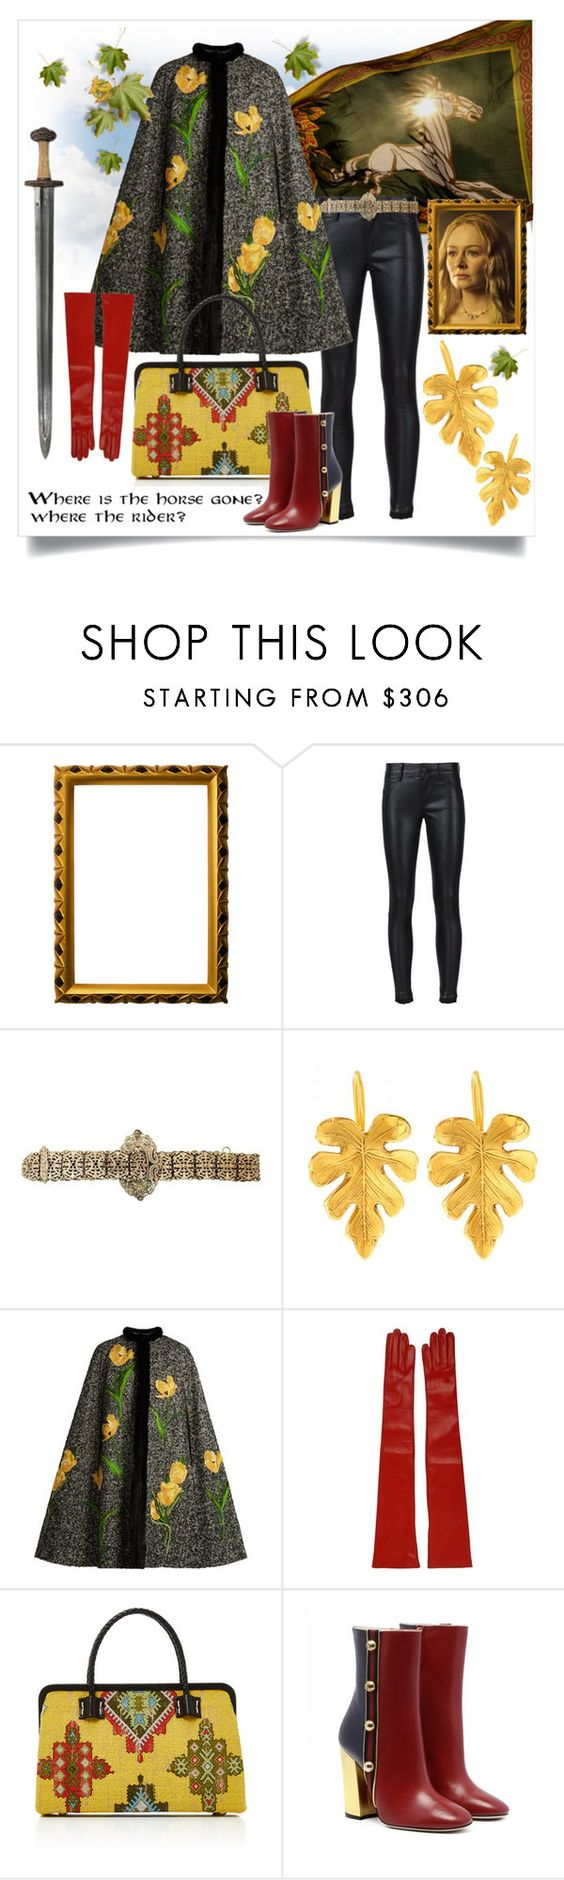 """""""Where is the horse gone? where the rider?"""" by capricat ❤ liked on Polyvore featuring Bottega d'Arte Maselli, RtA, Dolce&Gabbana, Mario Portolano and Marian Paquette"""